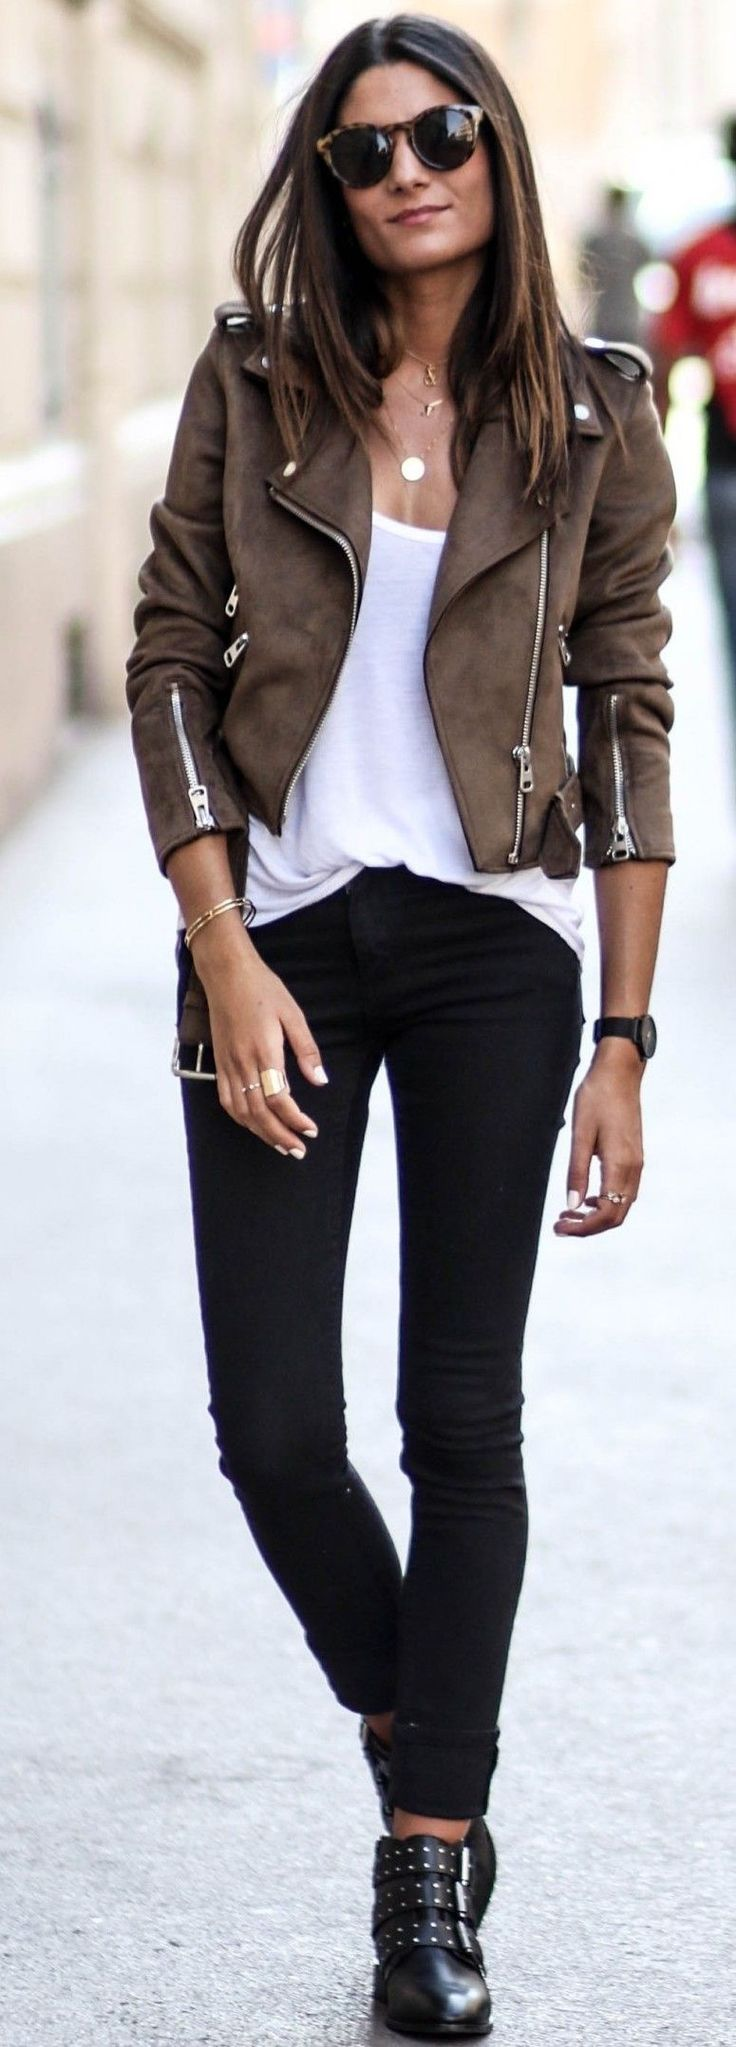 Suede Biker Jacket + White Tee + Black Jeans                                                                             Source